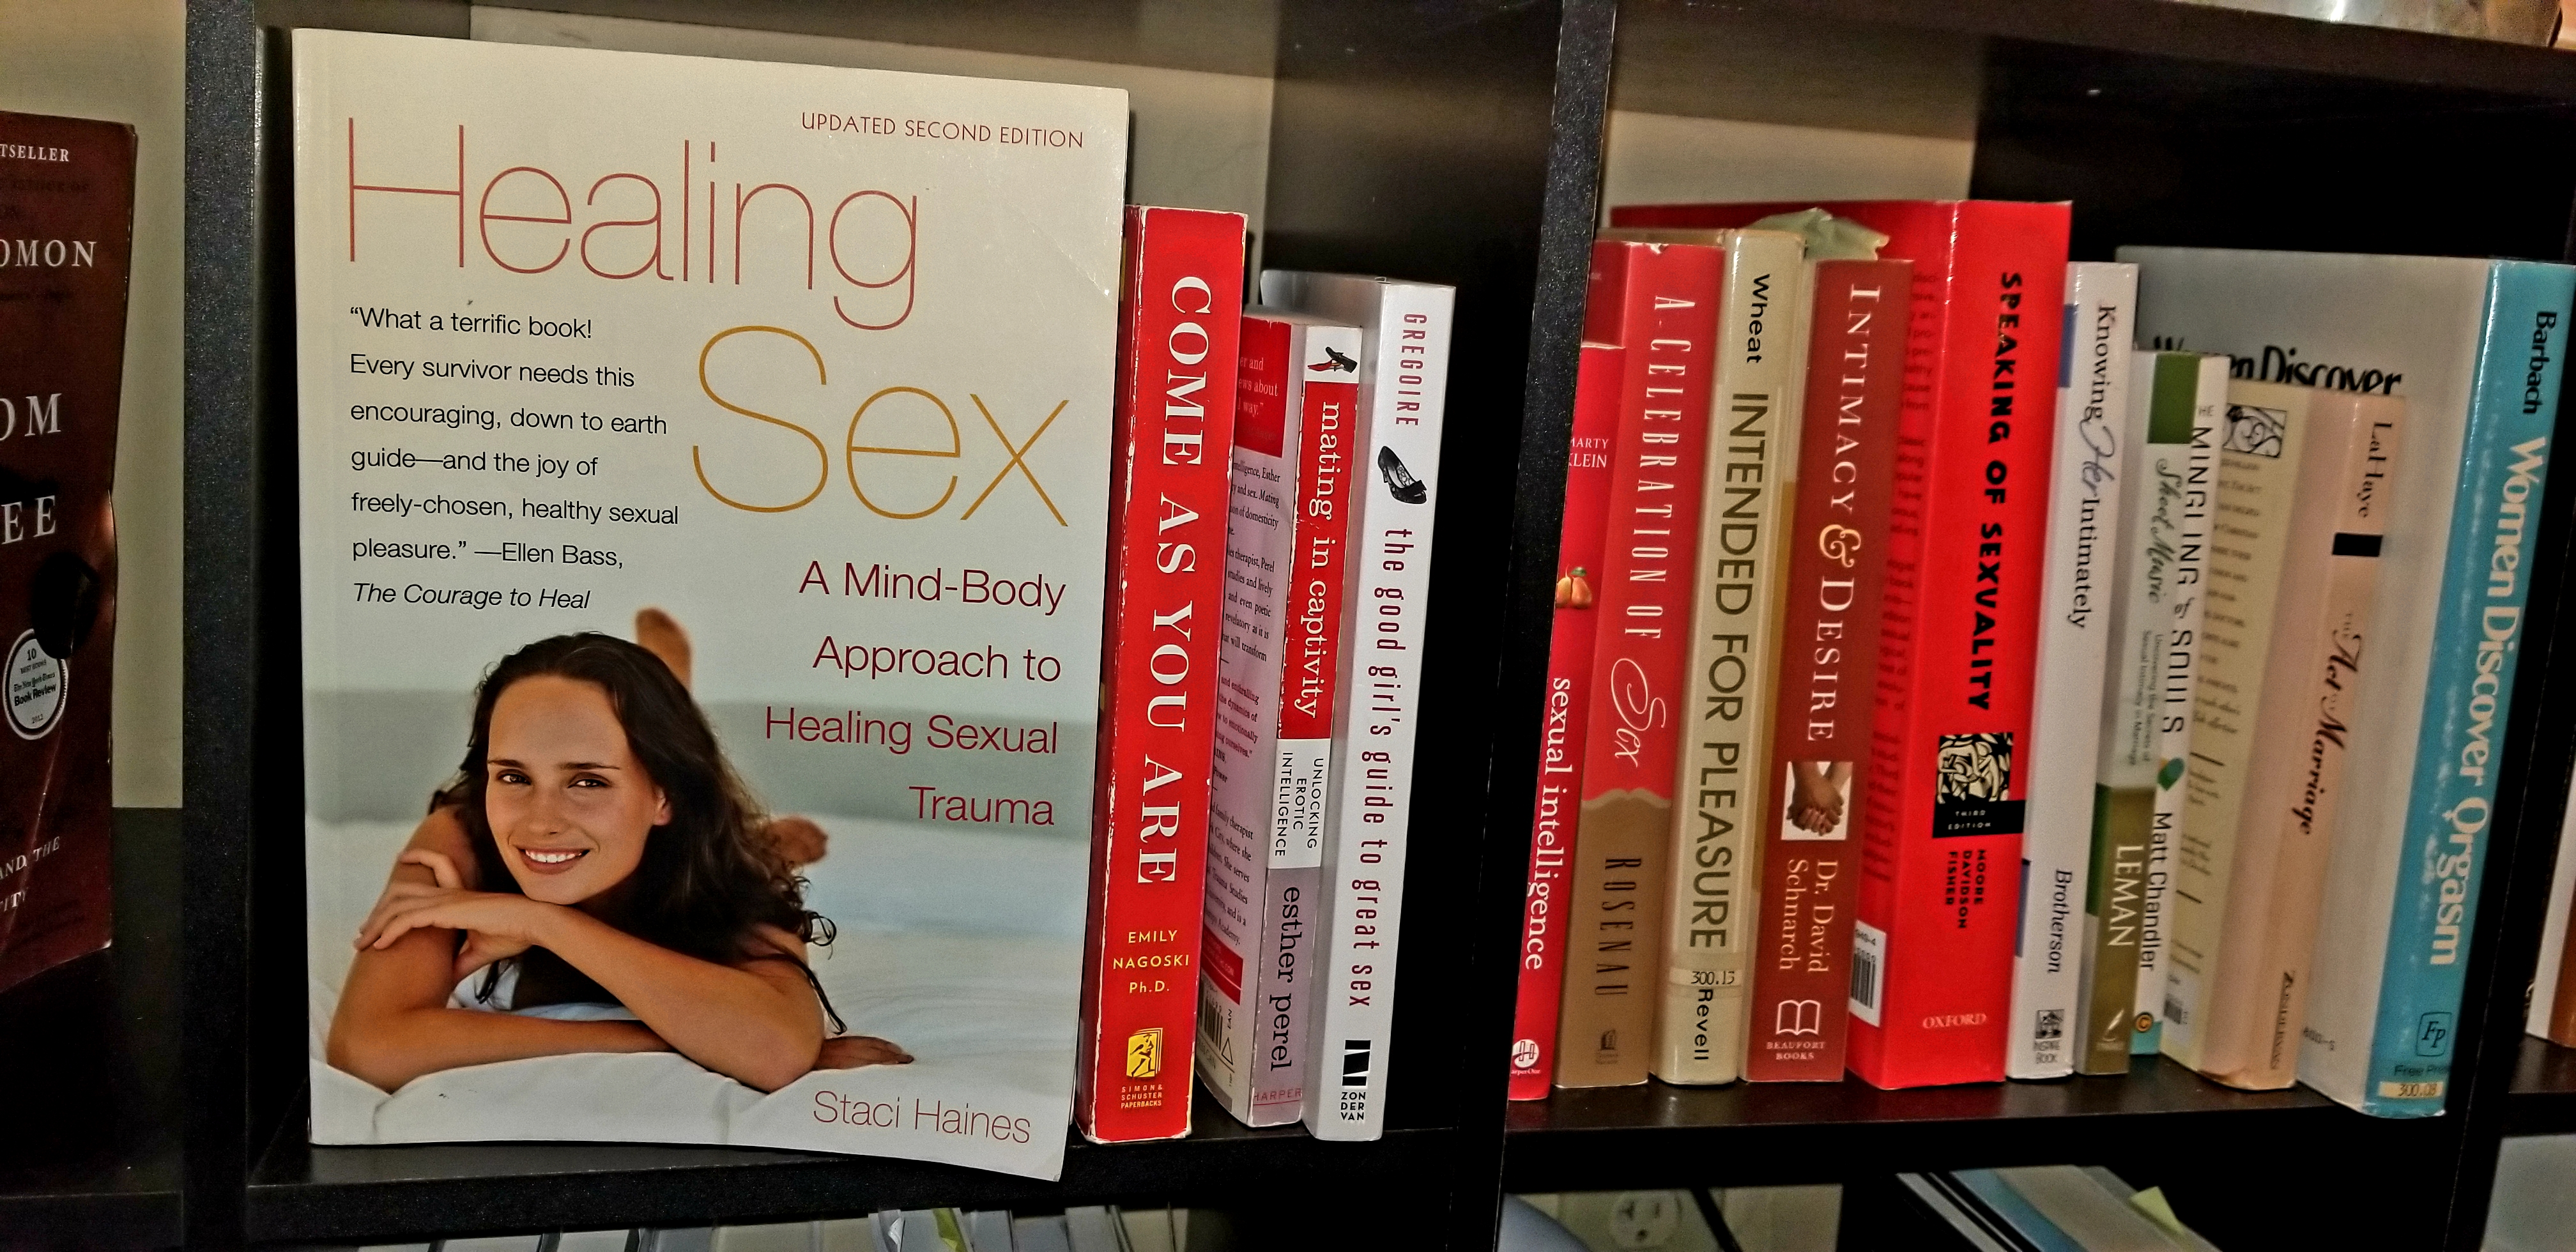 Review of Healing Sex: A Mind-Body Approach to Healing Sexual Trauma